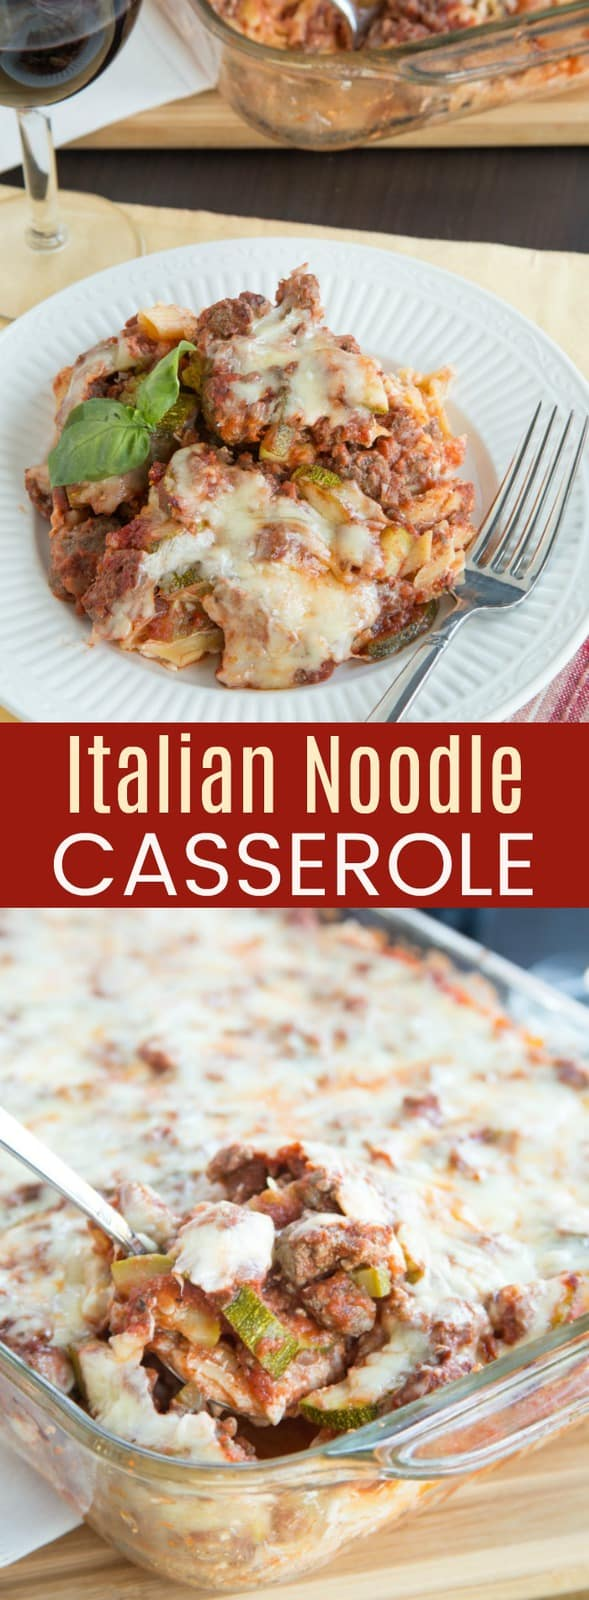 Italian Noodle Casserole - an old-fashioned baked Italian pasta recipe gets a healthy update, but keeps the layers of creamy noodles, meaty sauce and bubbly cheese. You can even use gluten free pasta to make this comfort food family dinner. #cupcakesandkalechips #pasta #casserole #glutenfree #comfortfood #noodles #groundbeef